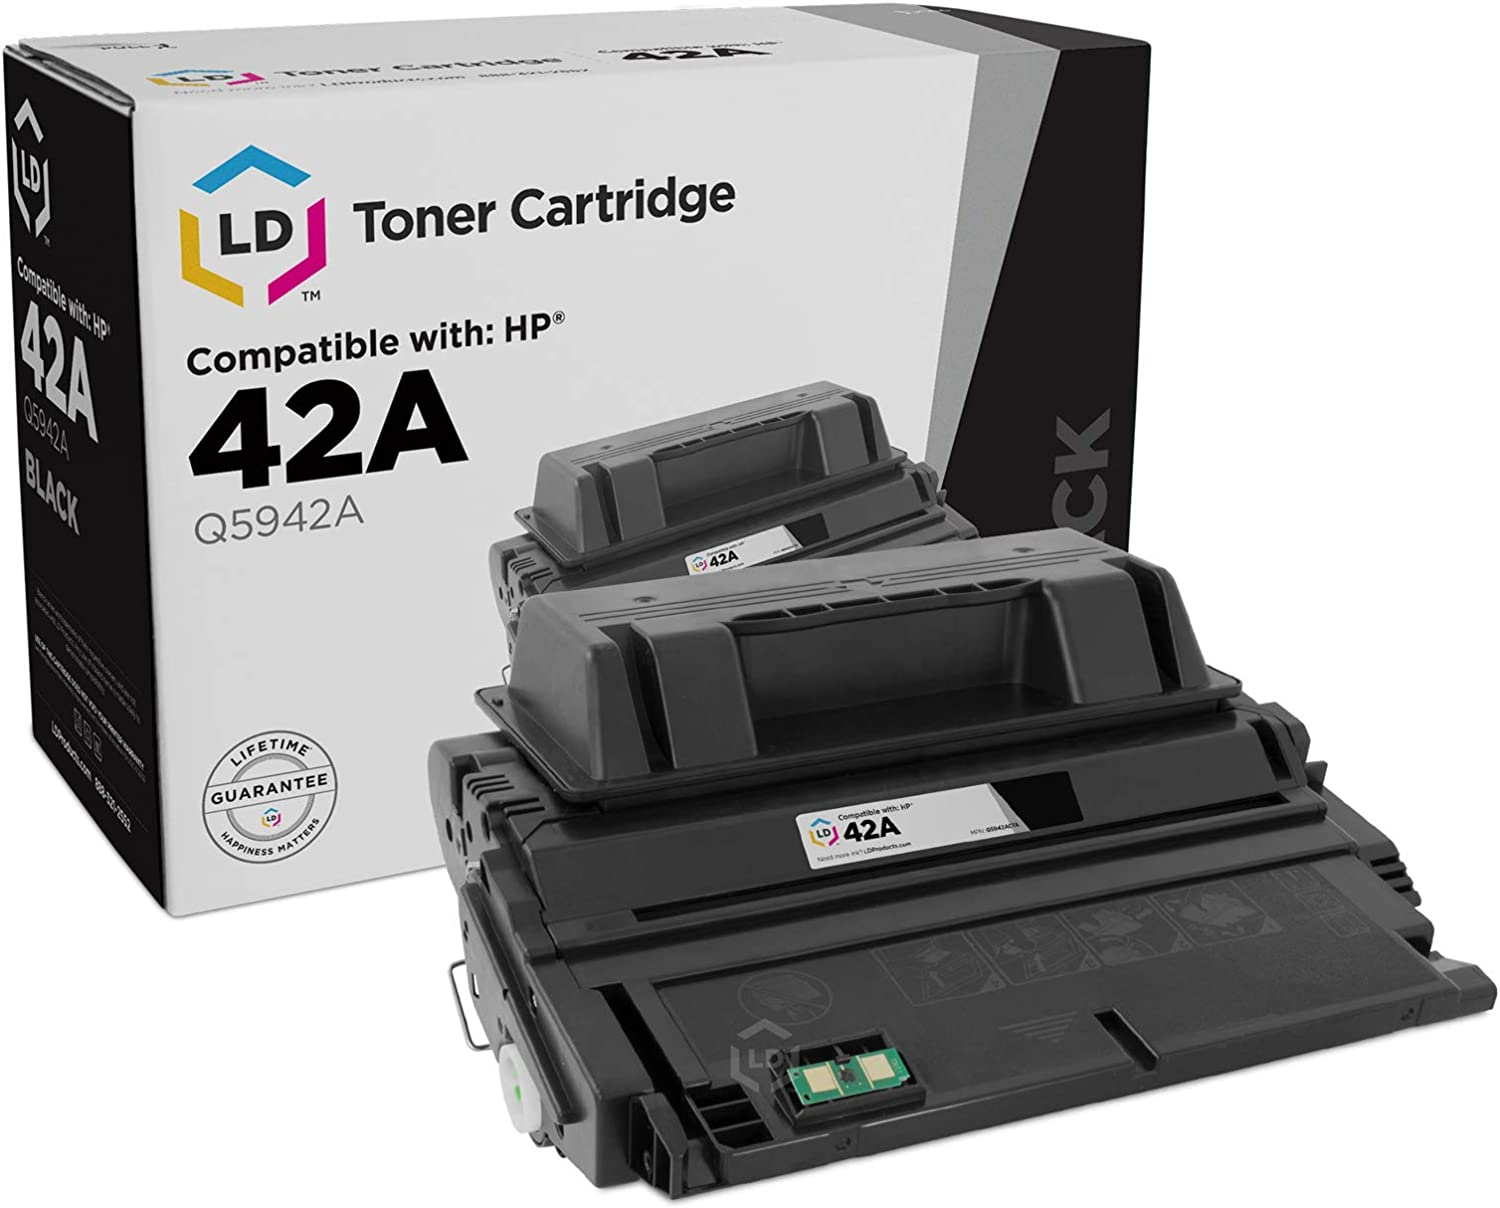 LD Compatible Toner Cartridge Replacement for HP 42A Q5942A (Black)